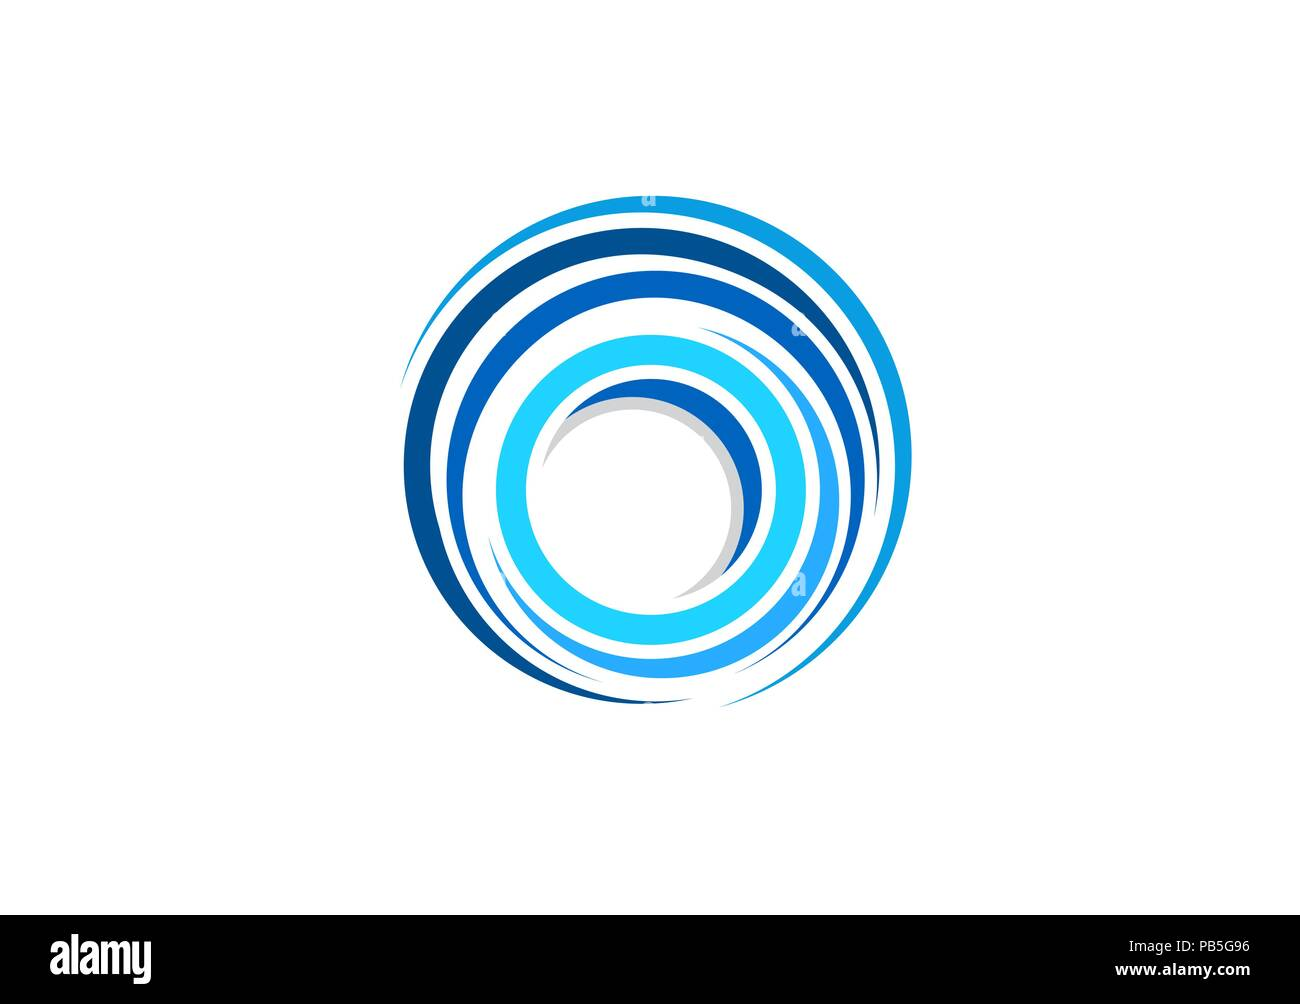 sphere circle elements swirl logo, abstract blue waves spiral round shape symbol, twist global wind sign icon vector design template - Stock Image